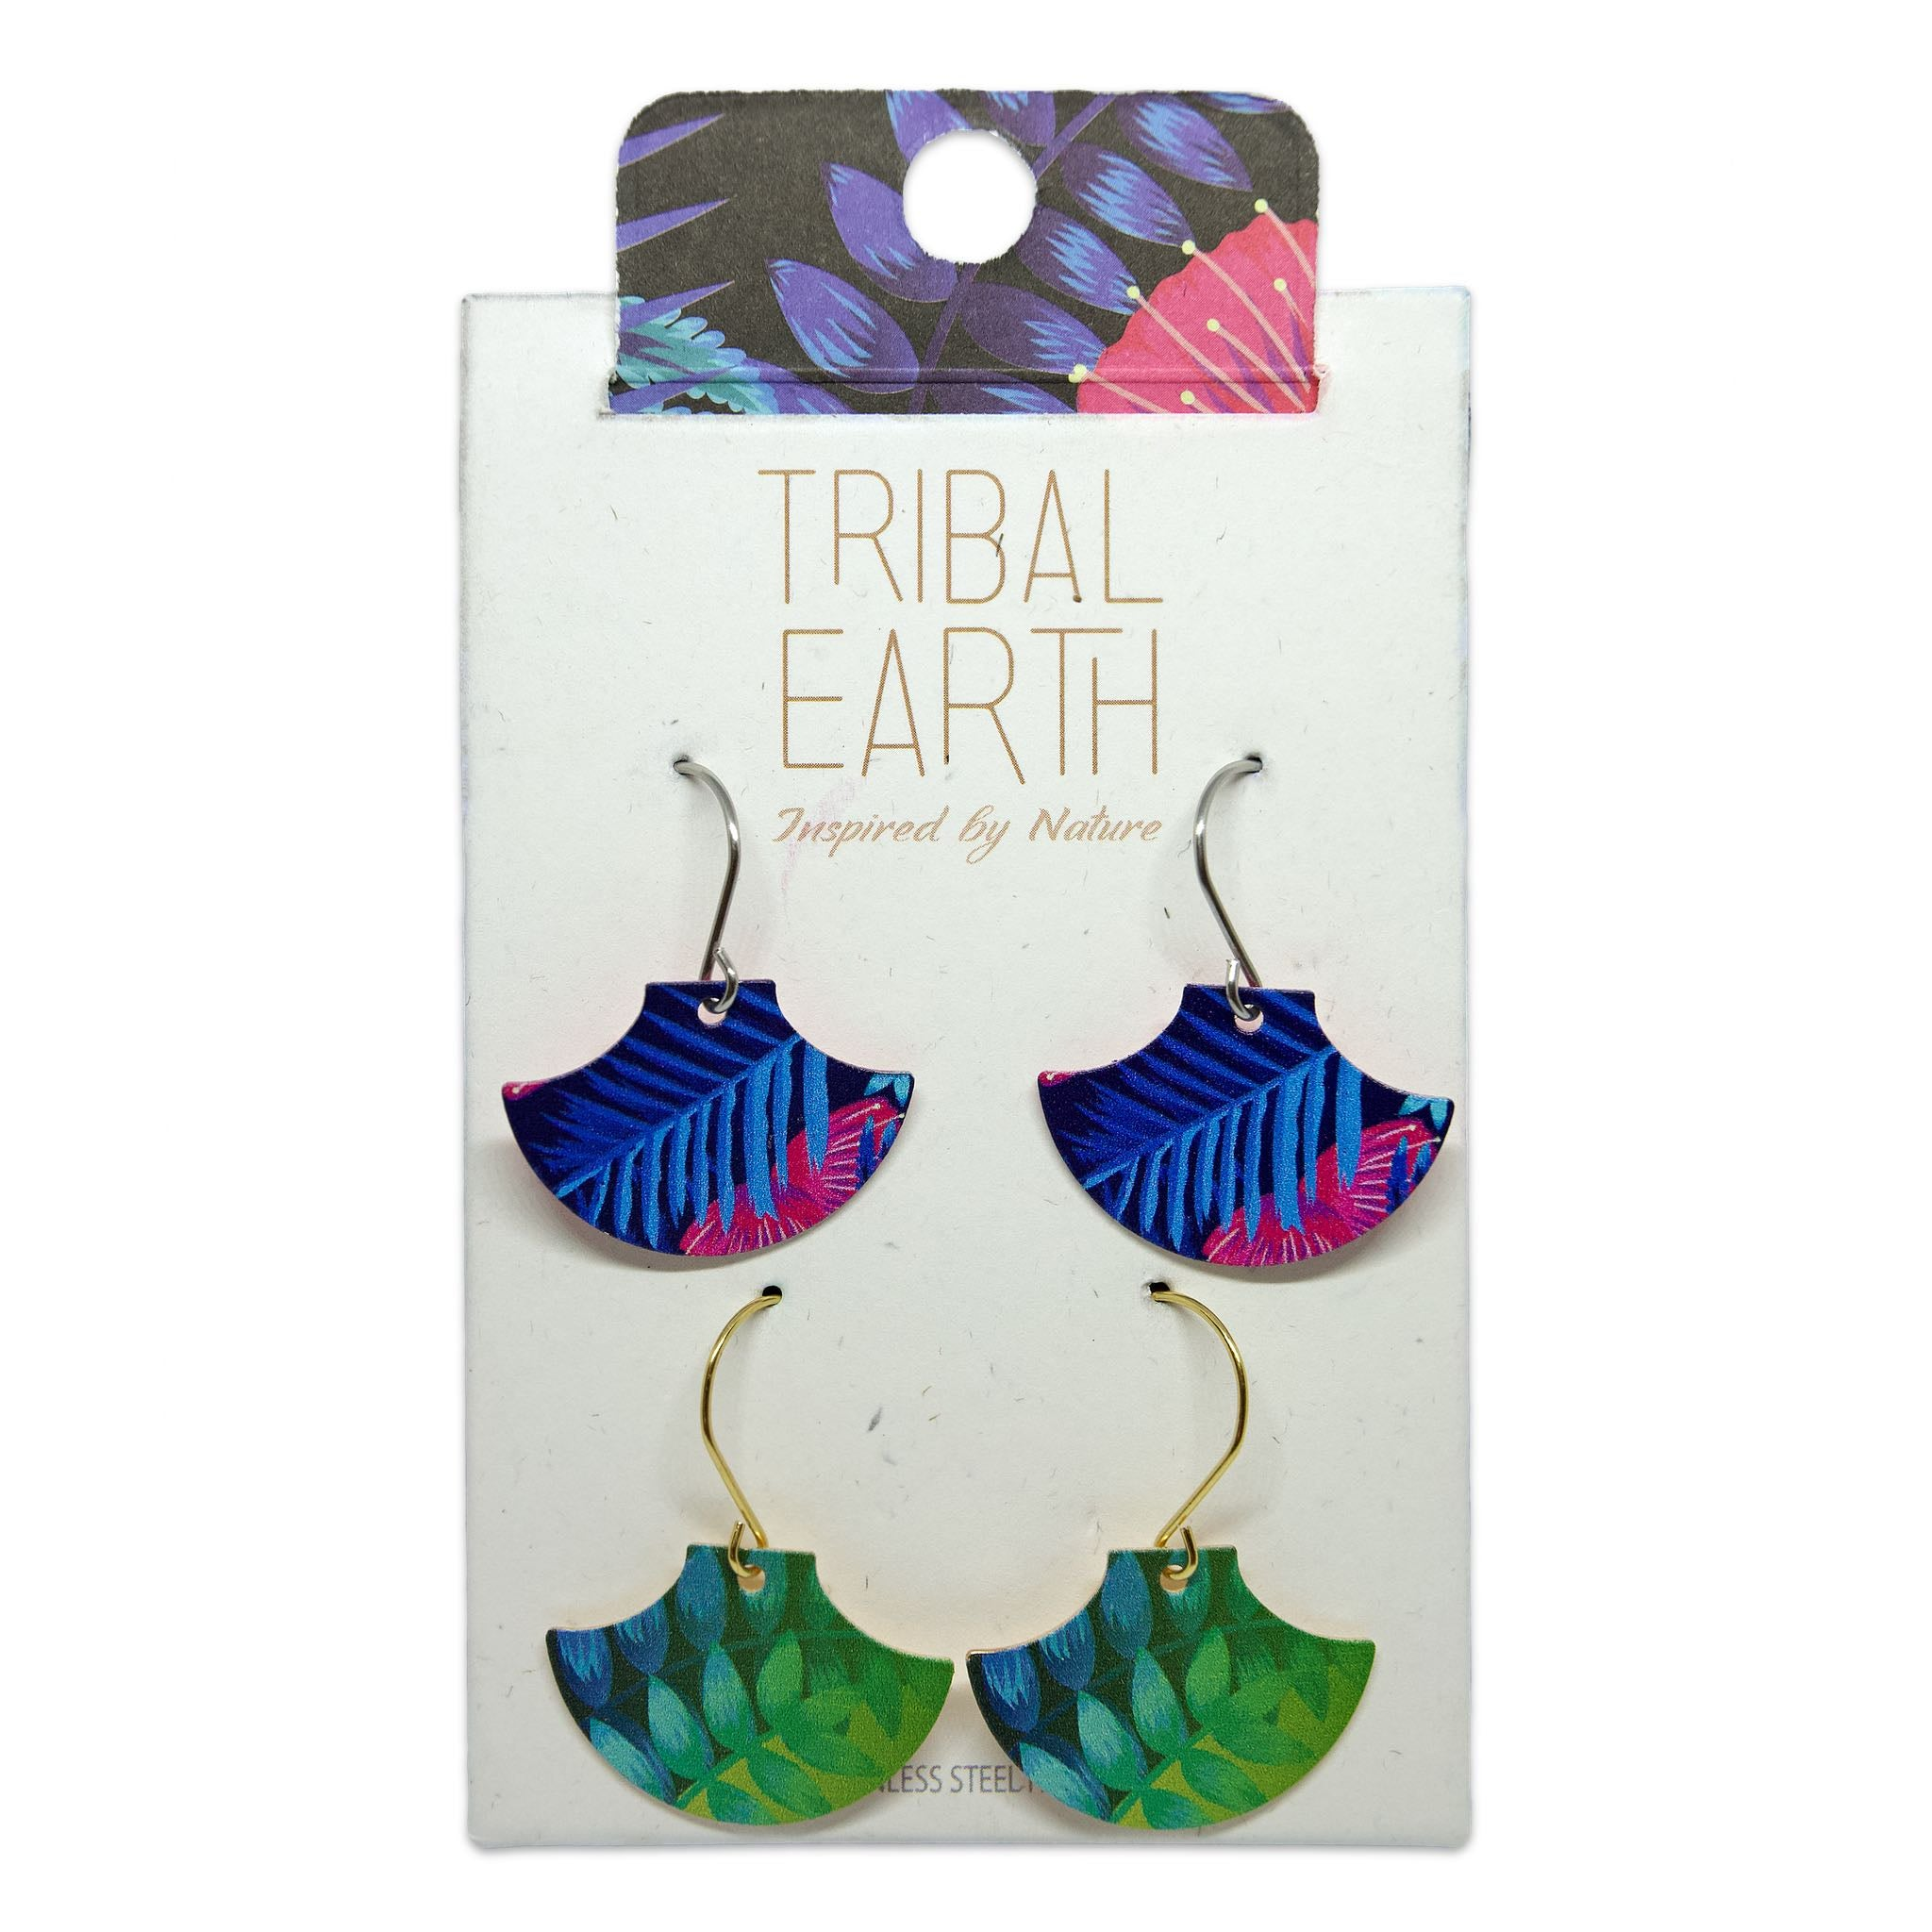 Fern design earring set. Designed in New Zealand. www.tribalearth.co.nz